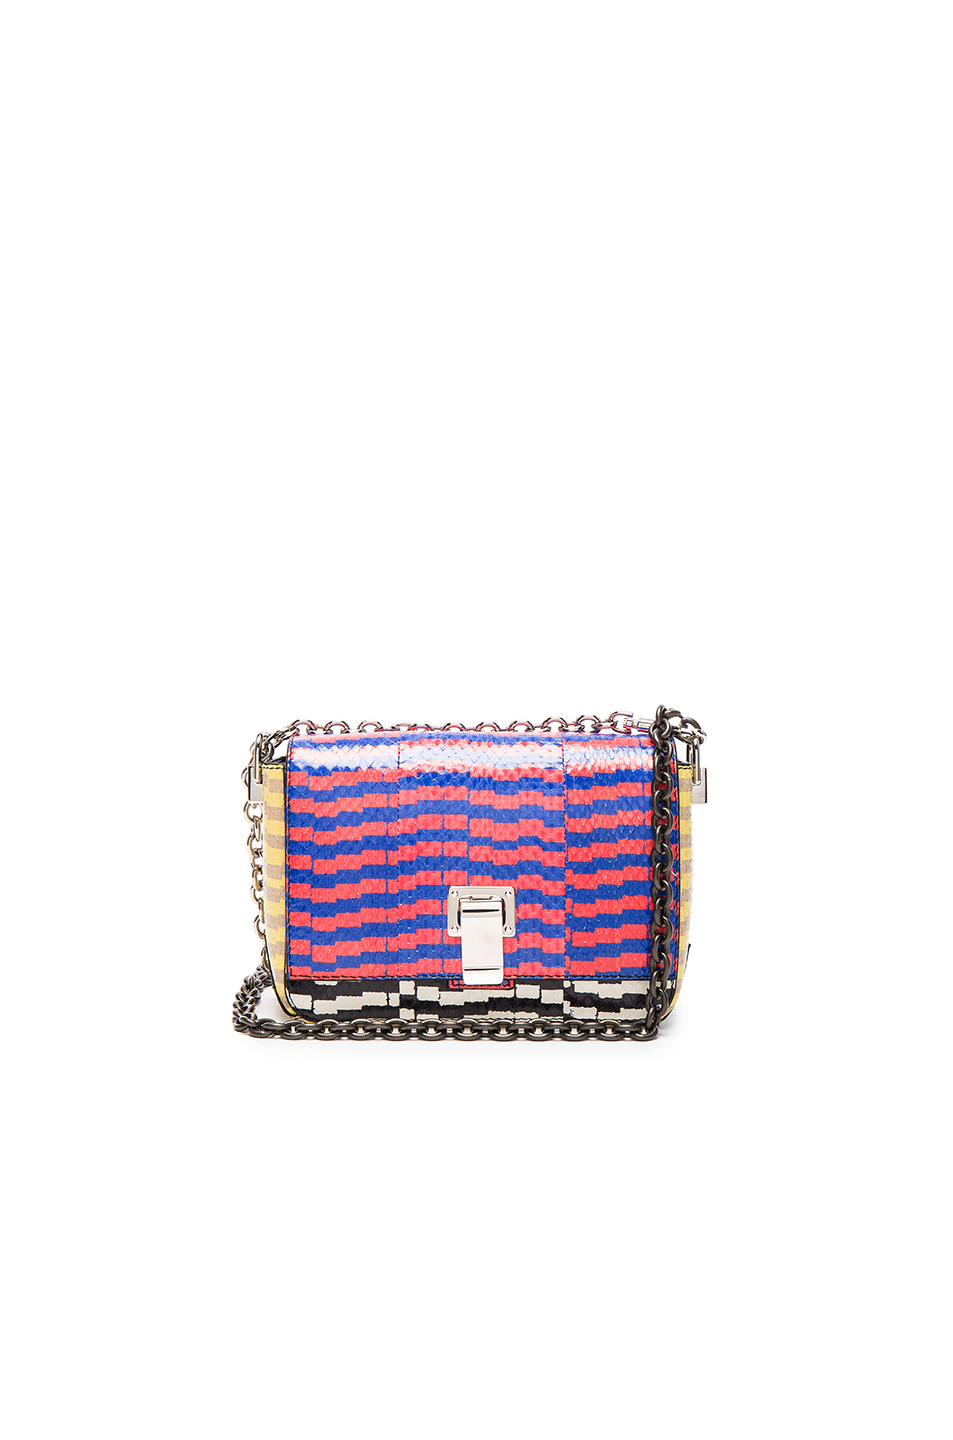 Proenza Schouler Extra Small Courier Mixed Printed Ayers in Checkered & Plaid,Red,Blue,Yellow,Abstract,Animal